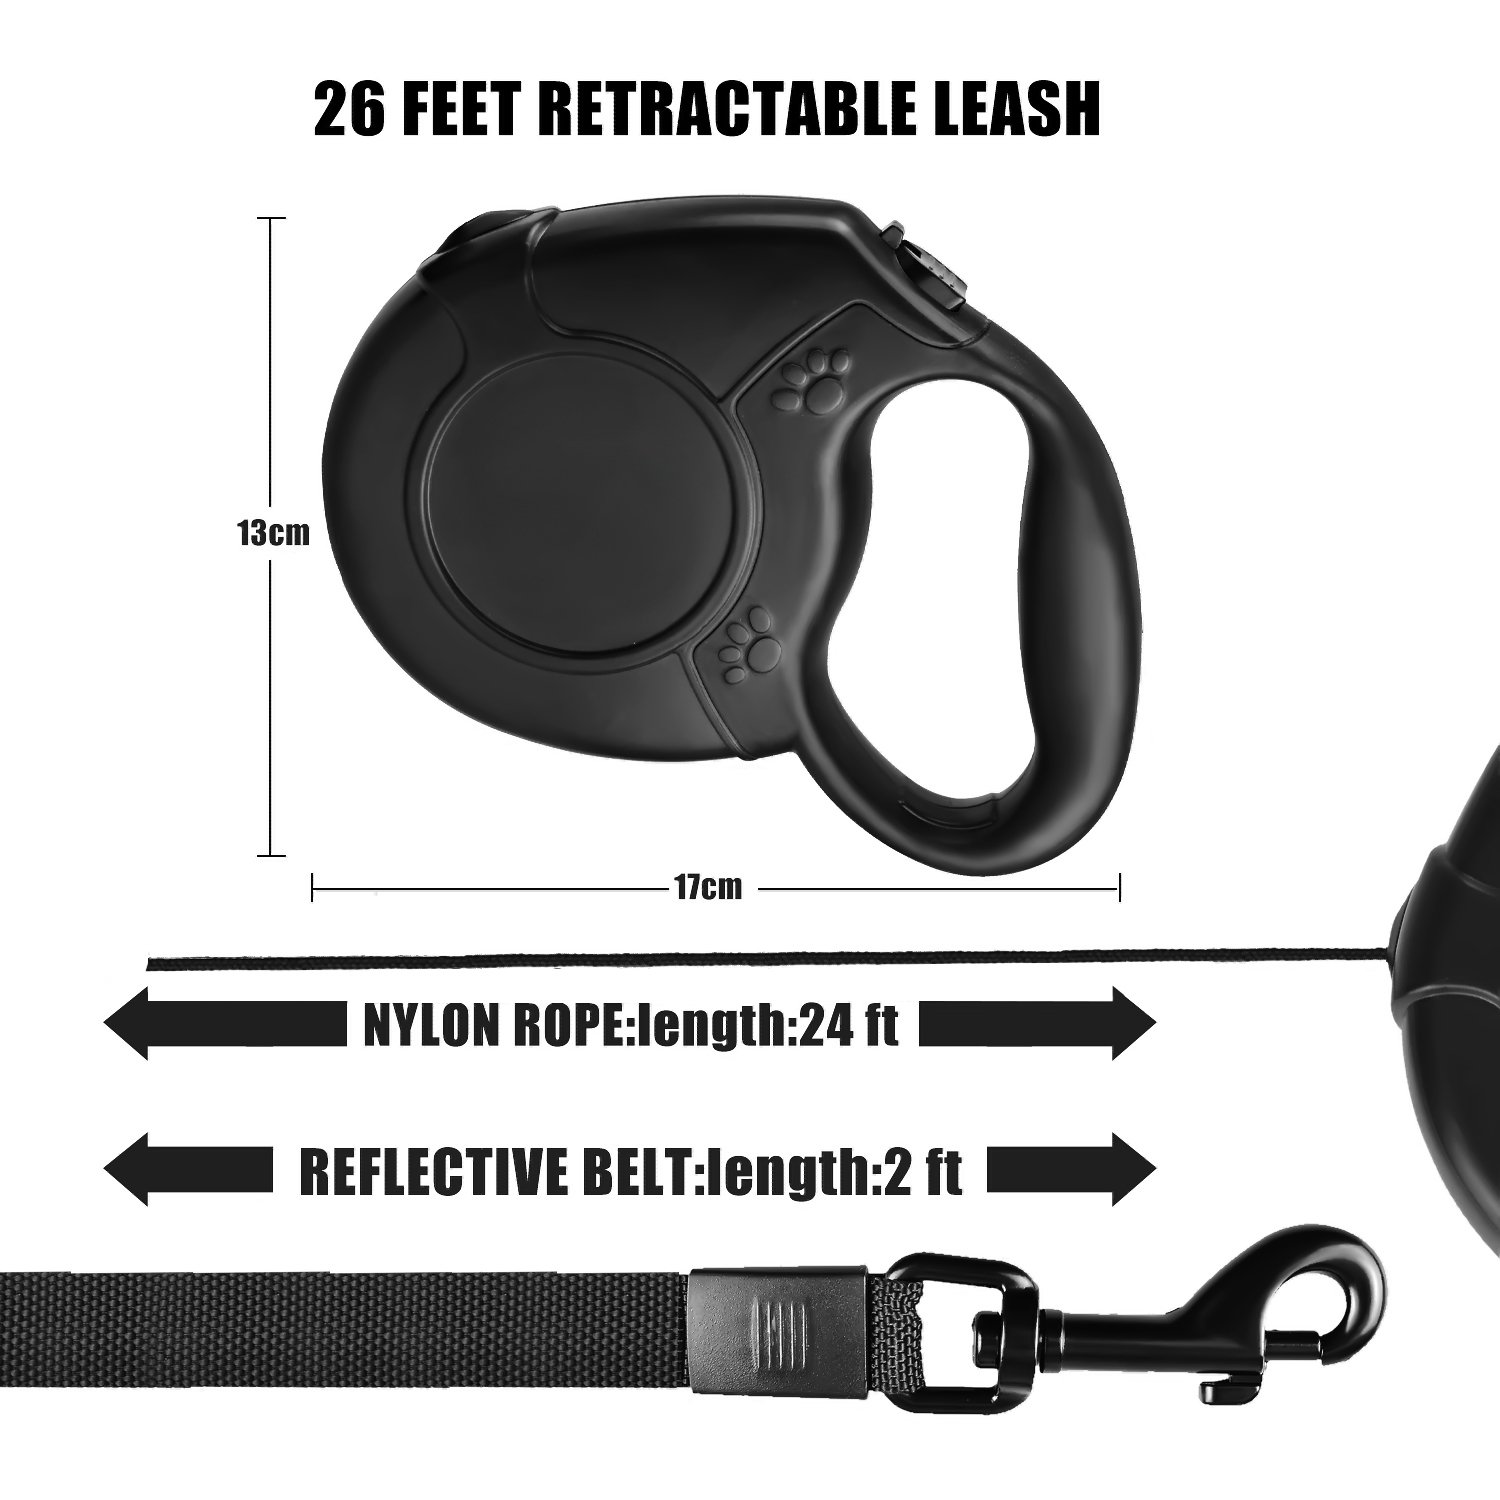 Retractable Dog Leash, FuPany Dog Walking Leash 26ft for Medium Large Dogs Up to 88lbs with Anti-Slip Handle (Black)